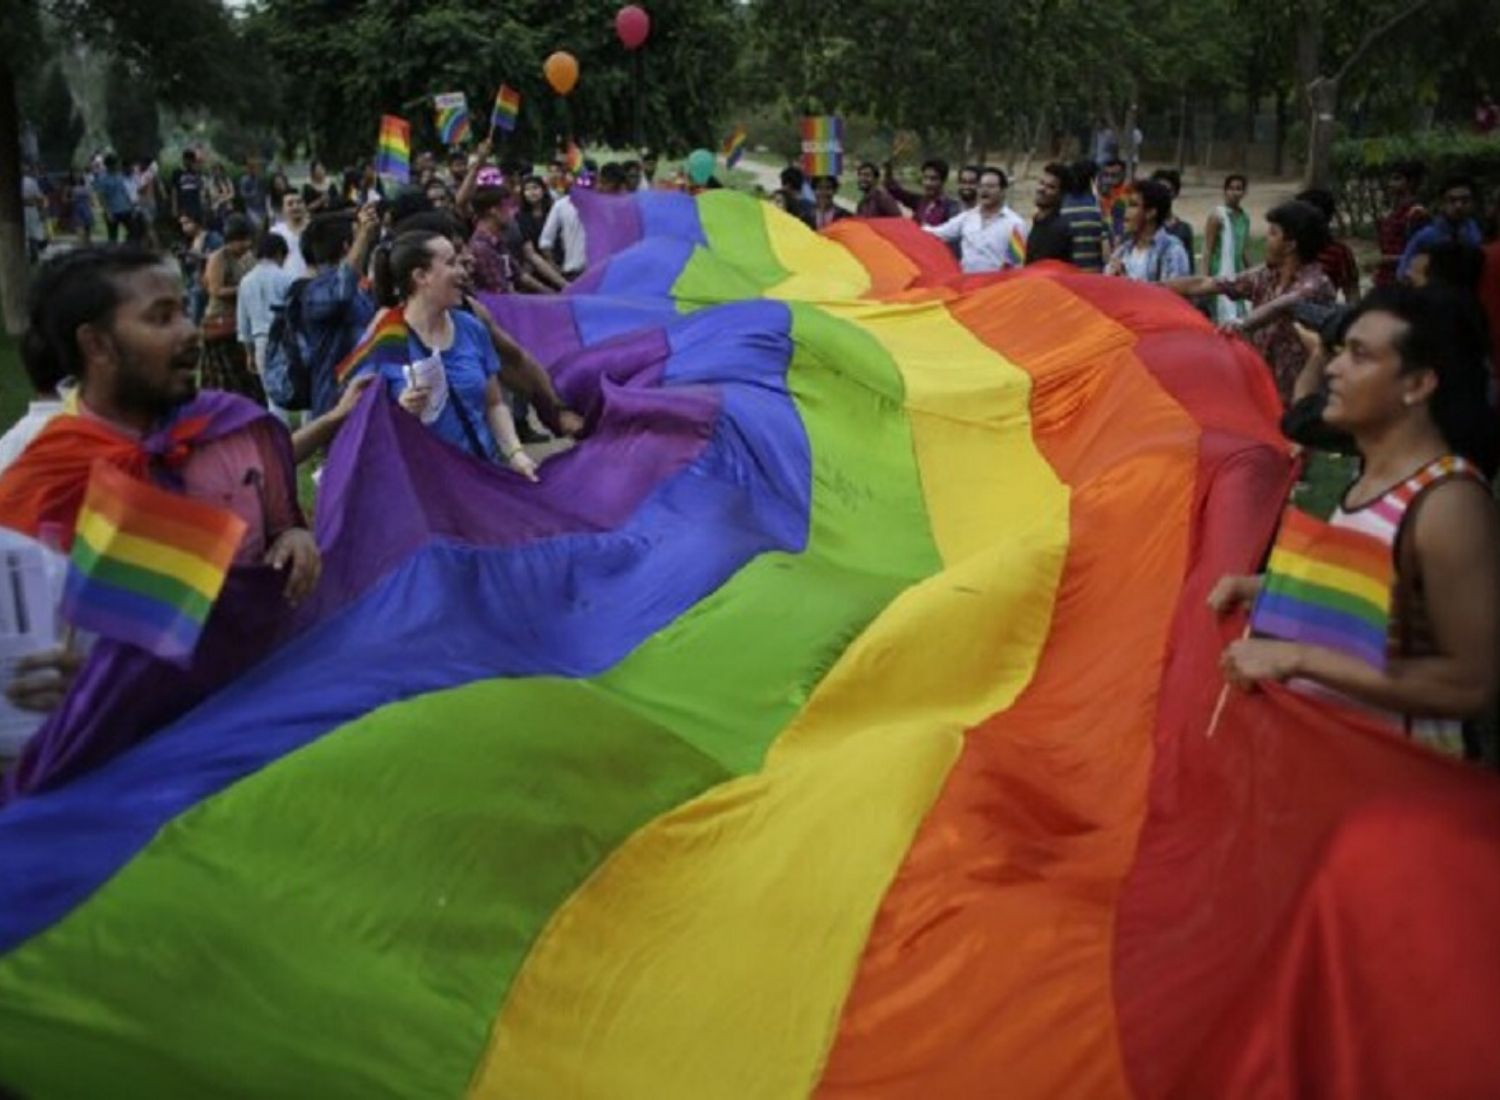 8 Ways to Make Society Better for the LGBTQ+ Community